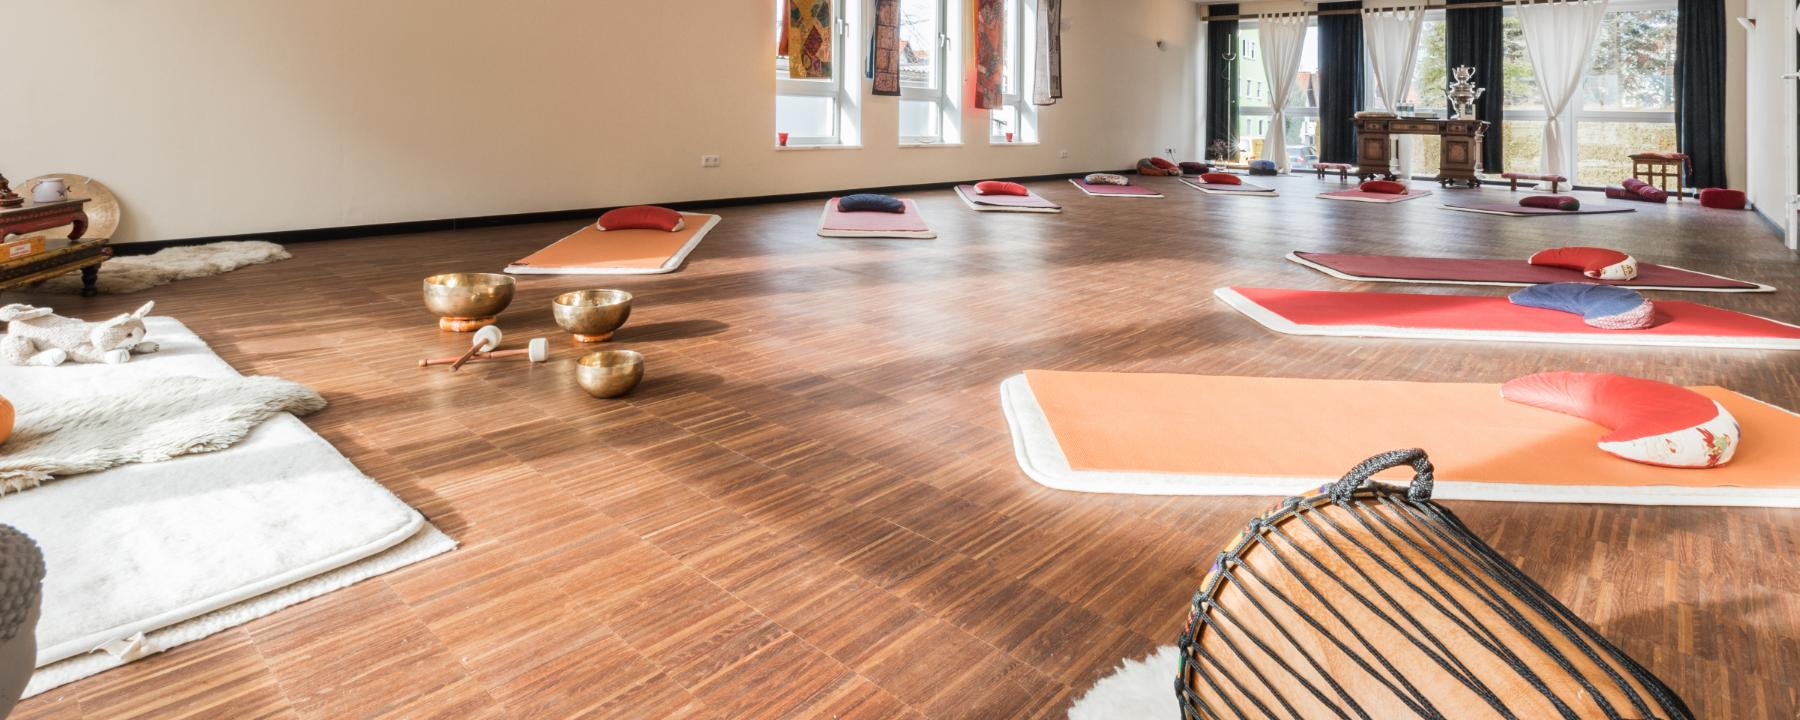 Yoga - Raum - Retreat